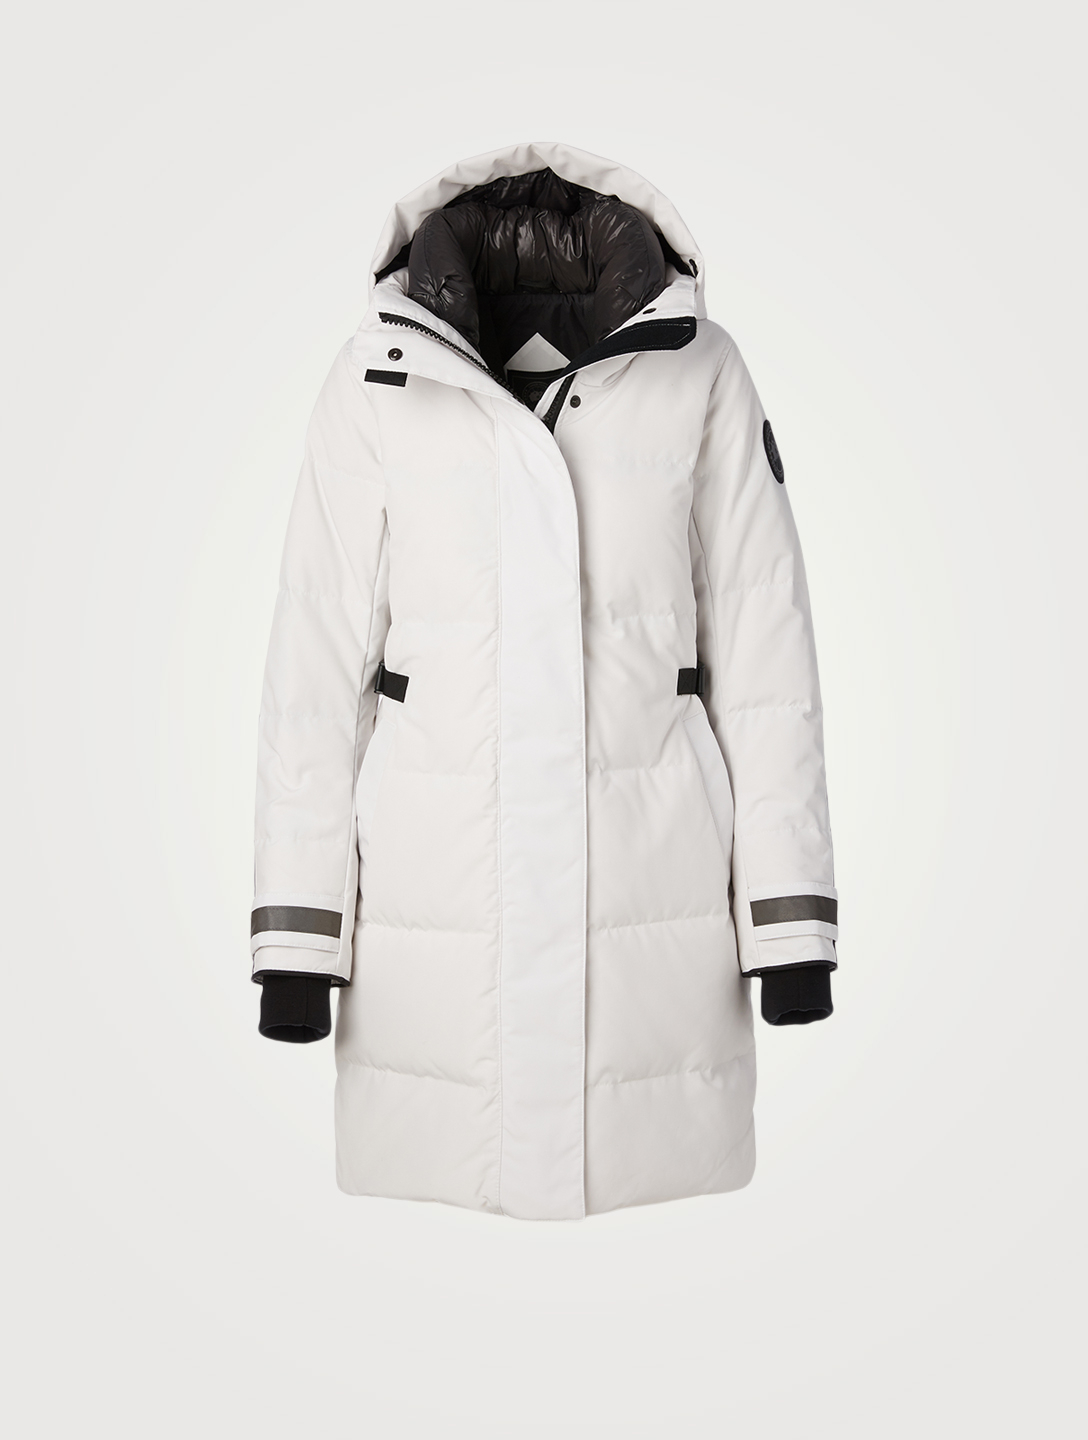 CANADA GOOSE Bennet Black Label Down Parka Women's White